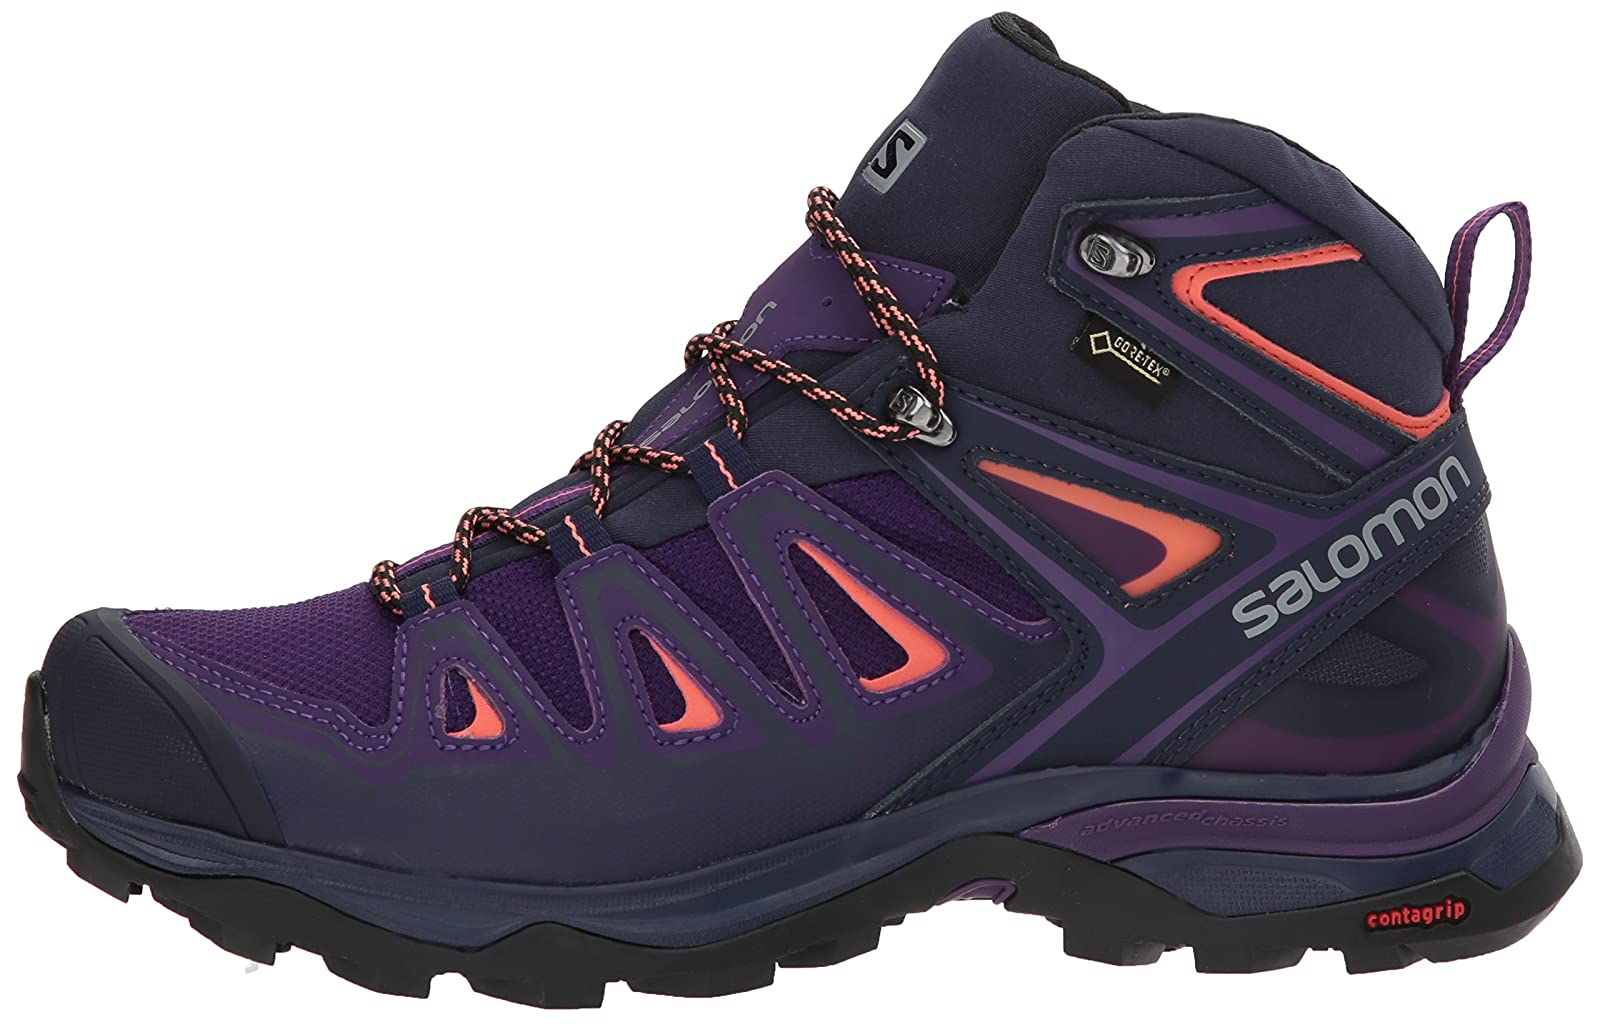 Salomon Women's X Ultra 3 Mid GTX W Hiking Boot 401346 - 5